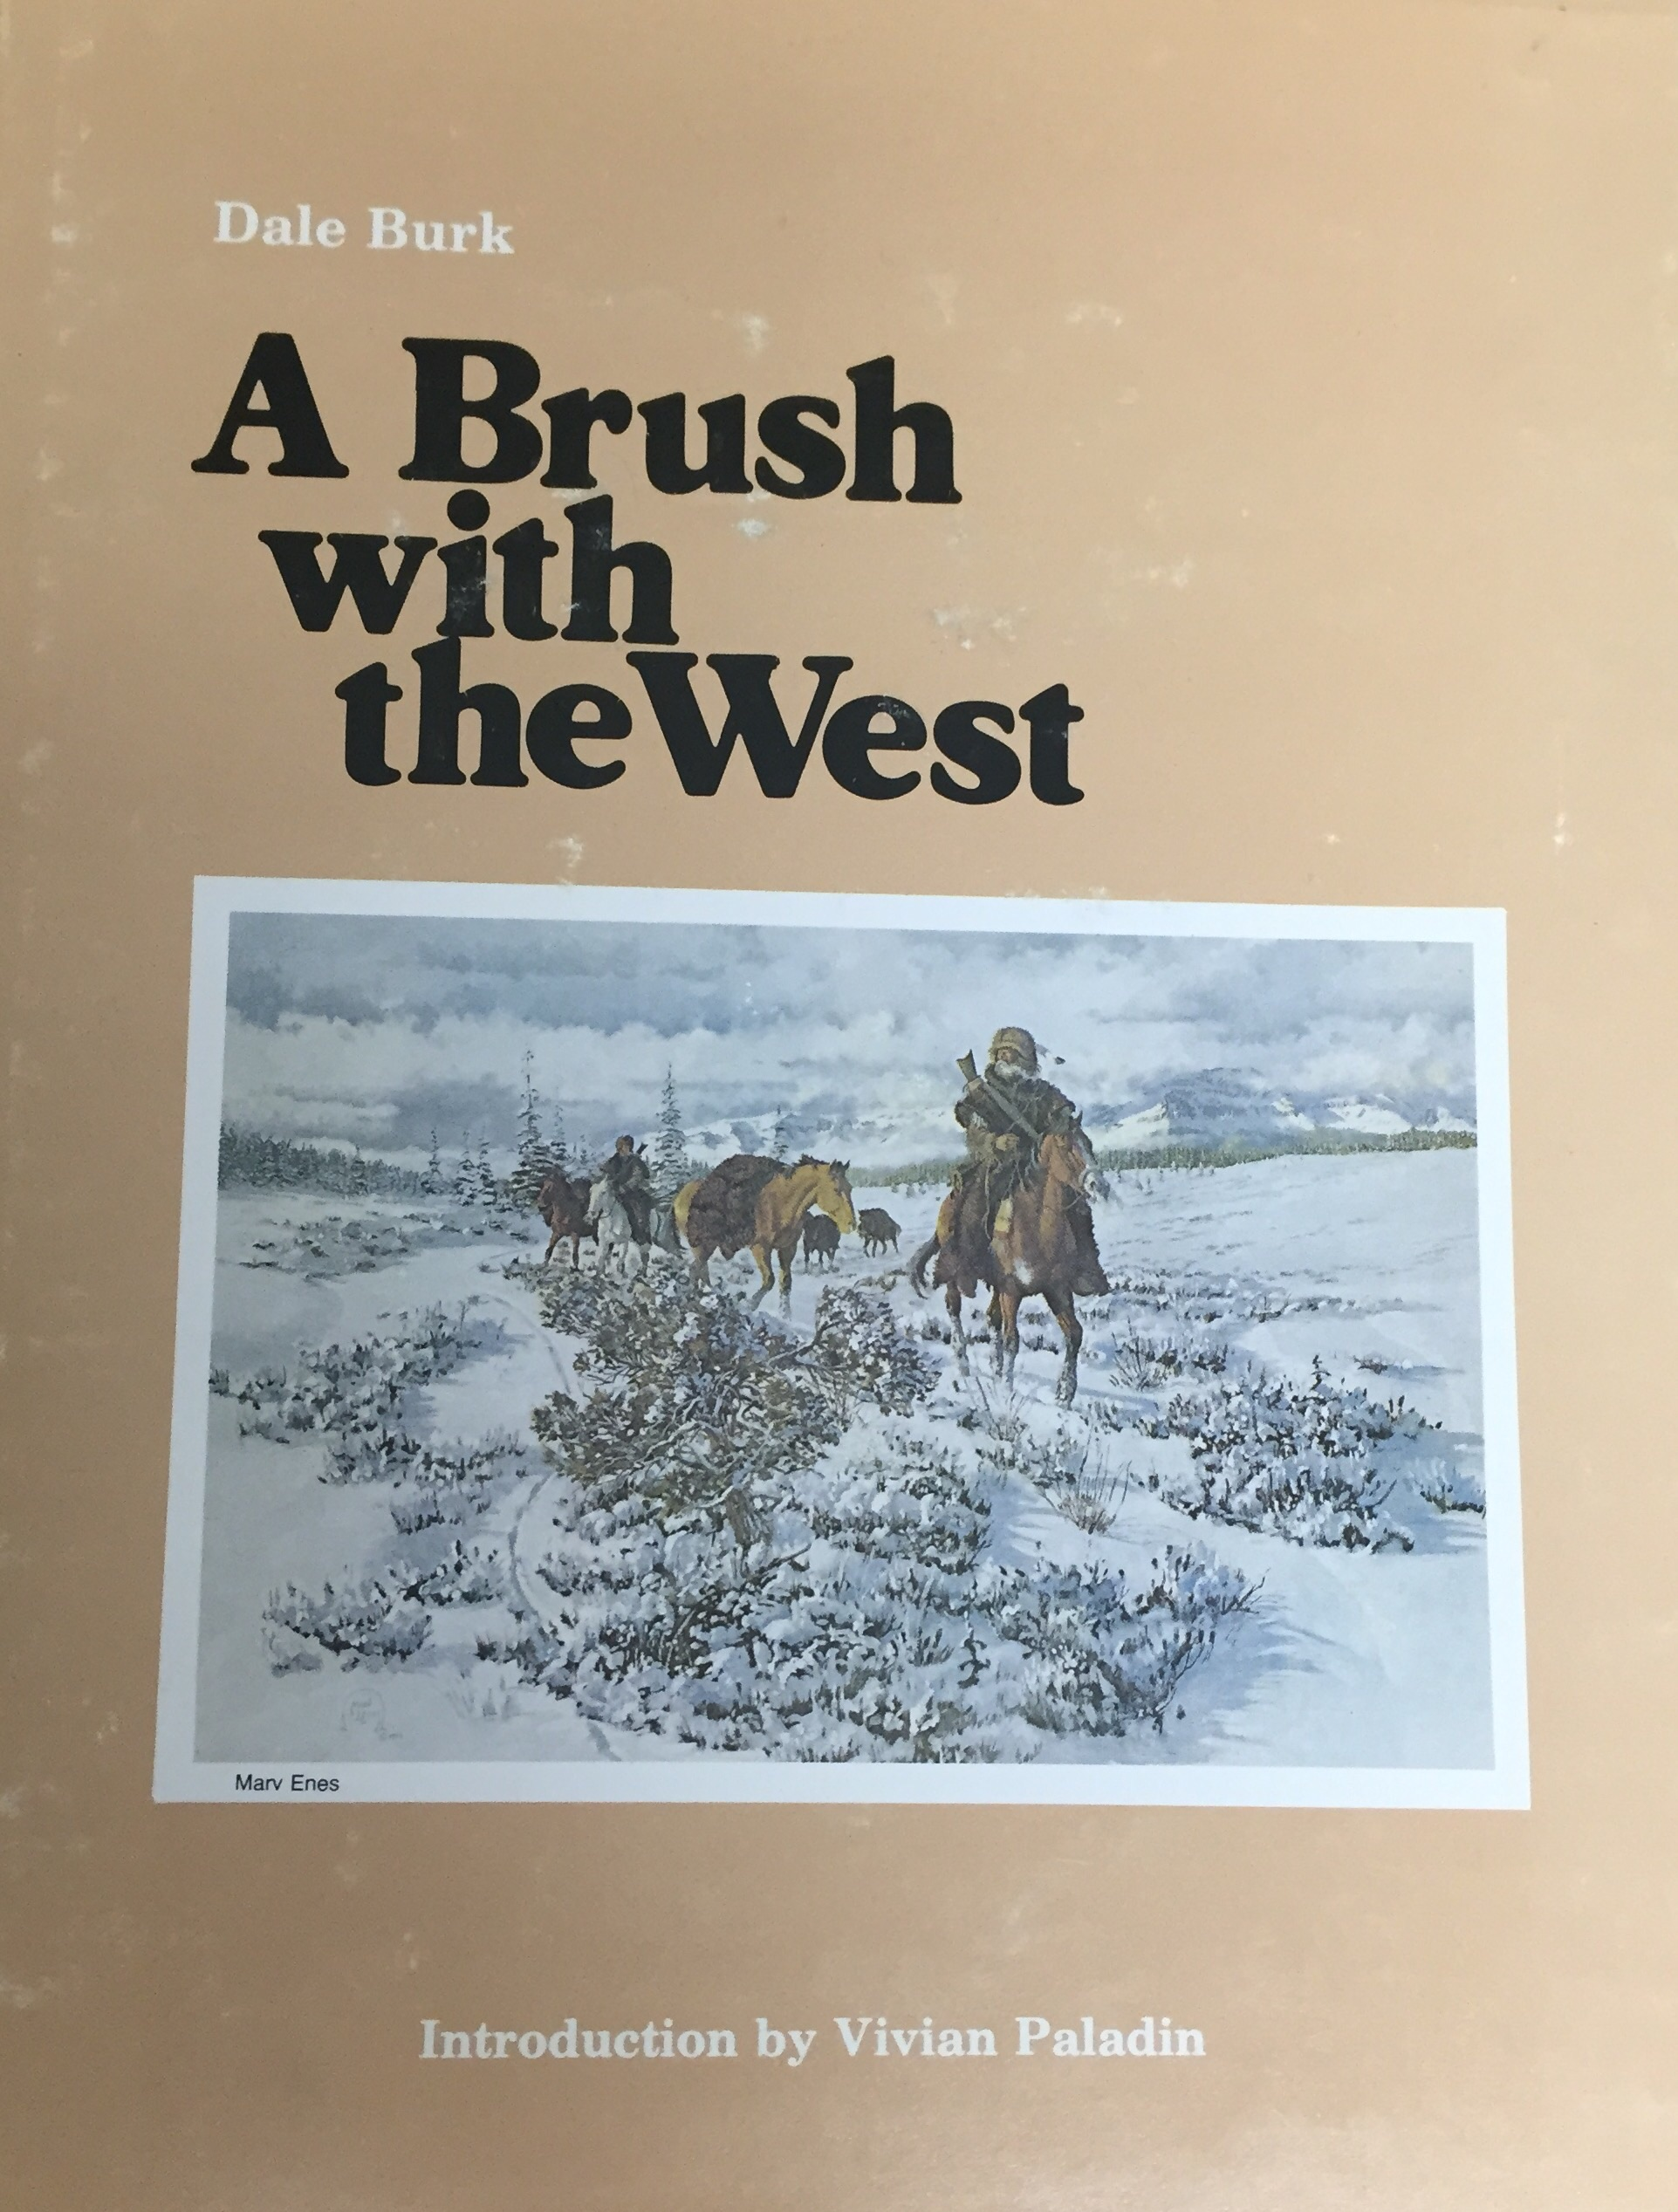 A Brush With the West